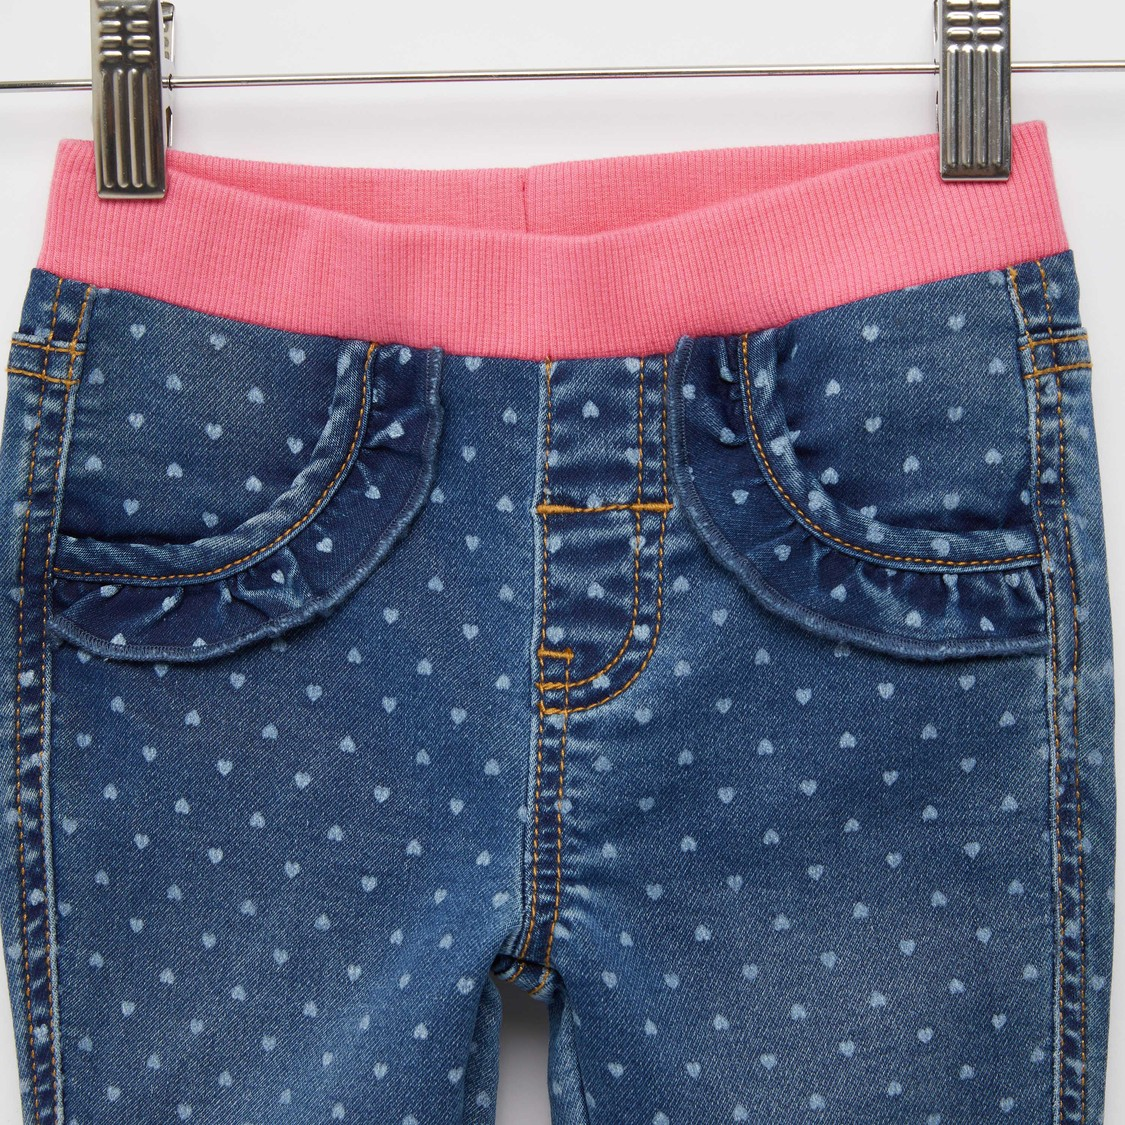 Heart Print Jeggings with Pockets and Elasticised Waistband